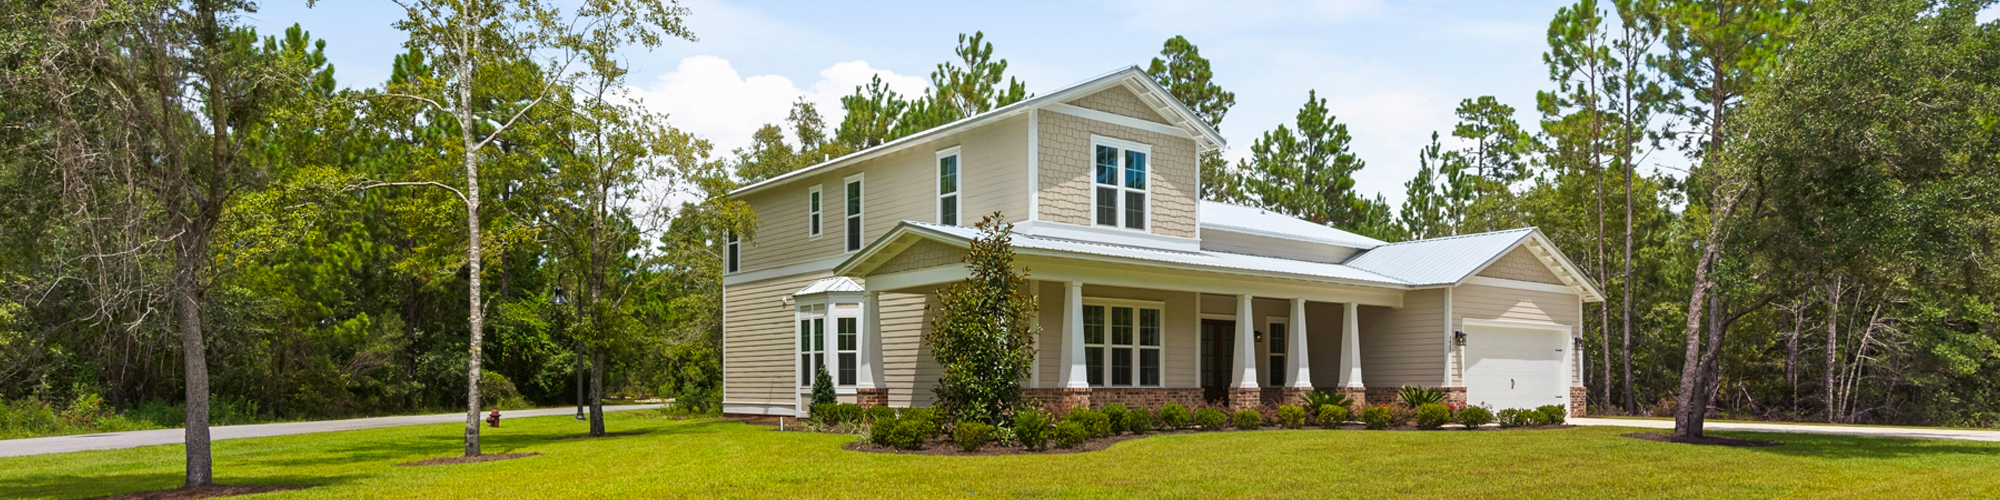 Home Features New construction homes in Freeport Florida